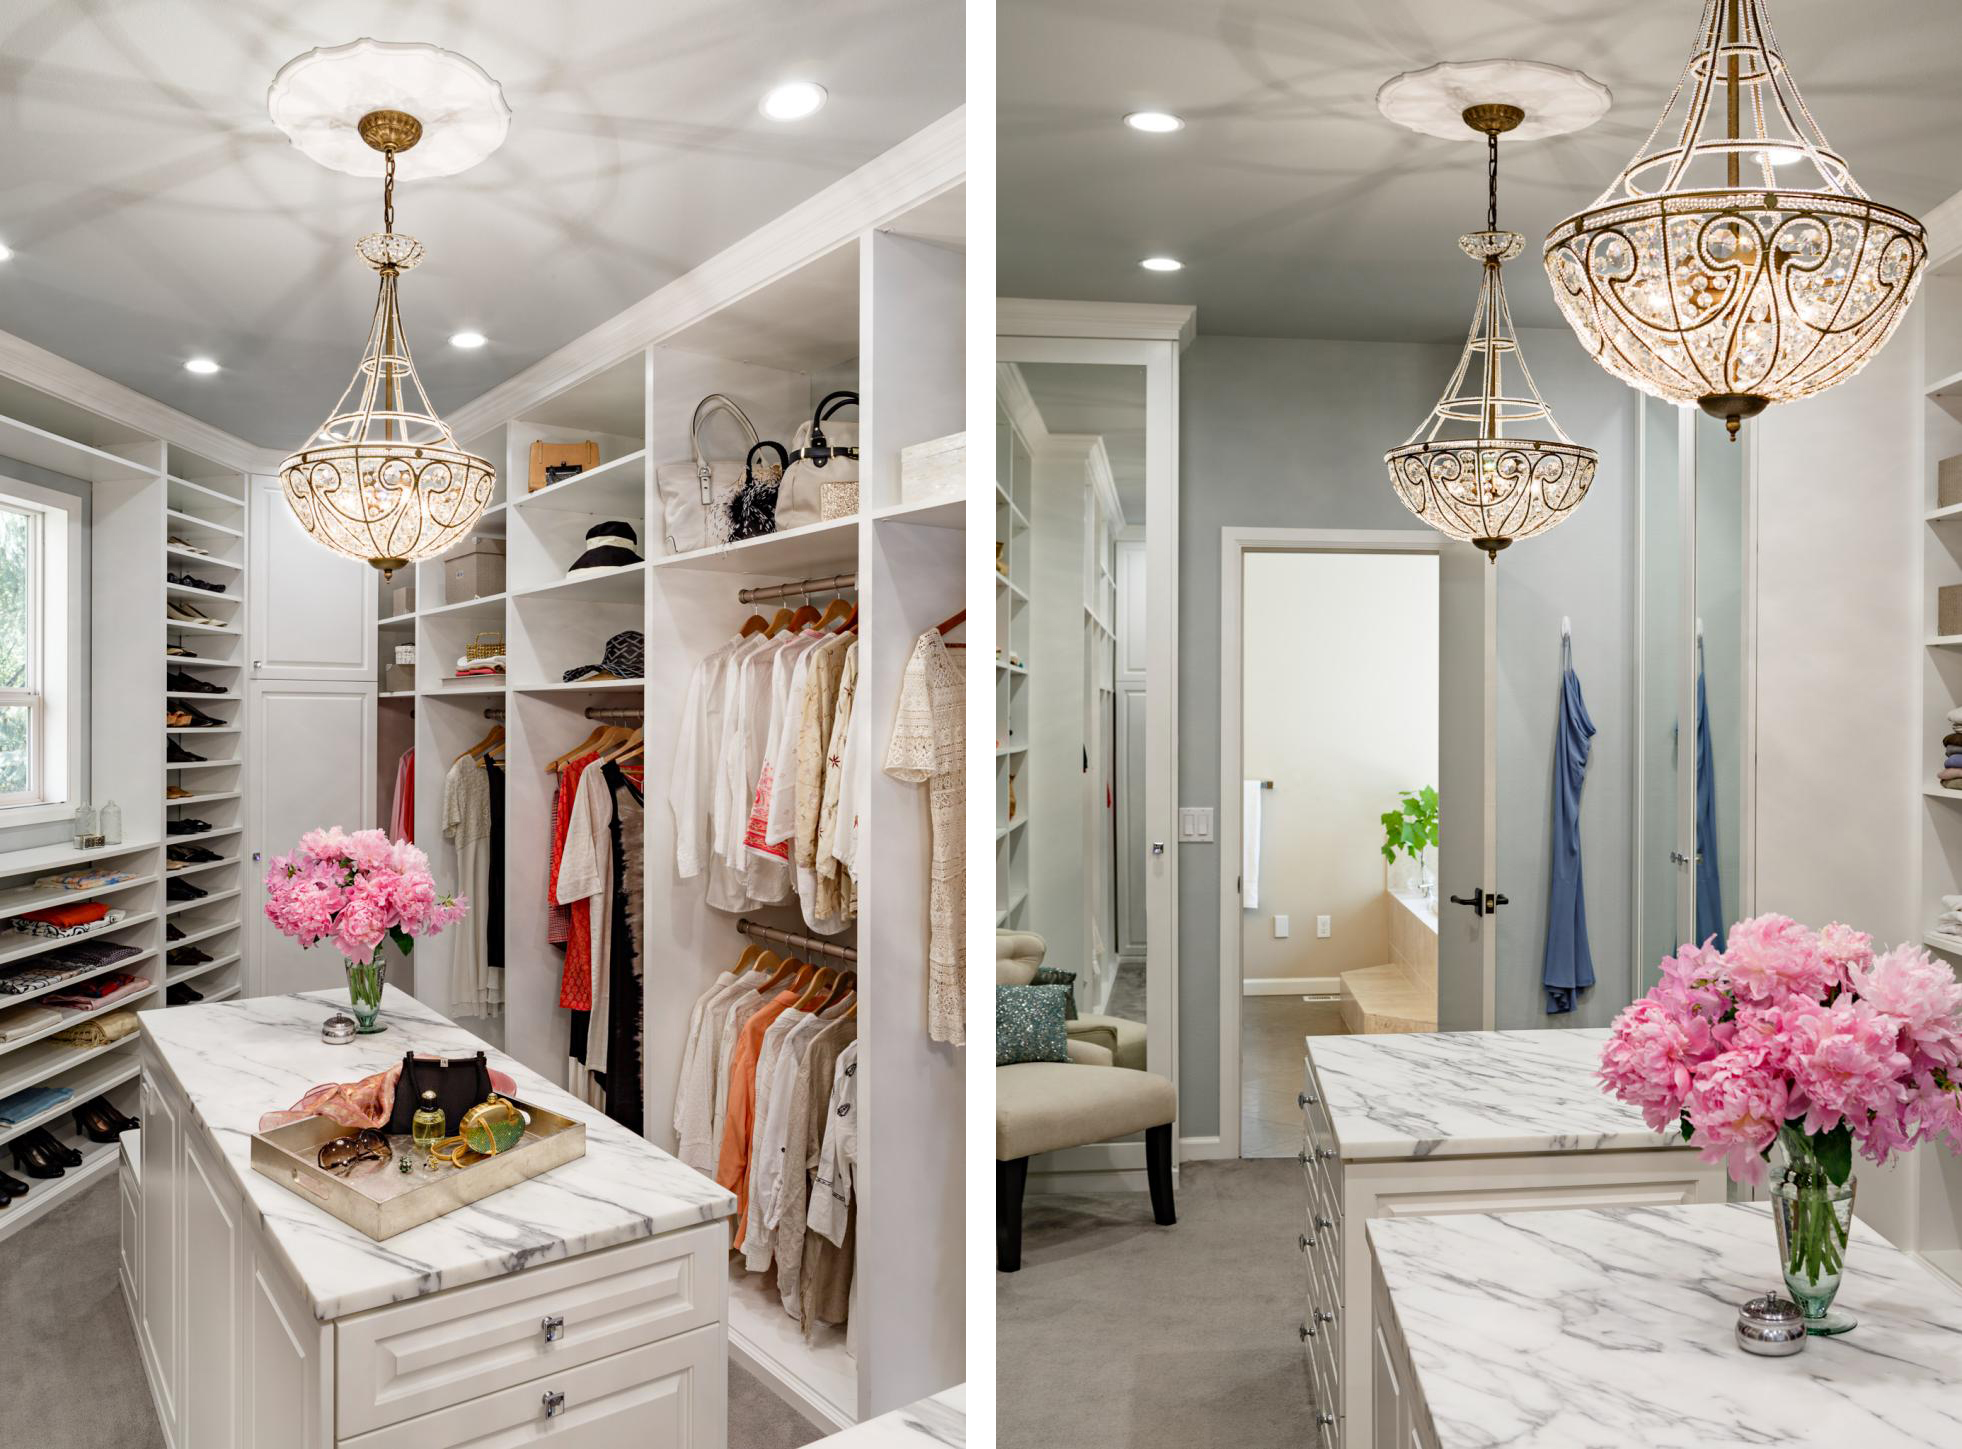 5 Top Luxurious Ideas Of Closets 5 Top Luxurious Ideas Of Closets 5 Top Luxurious Ideas Of Closets Calcatta Marble style Master Luxury Closets